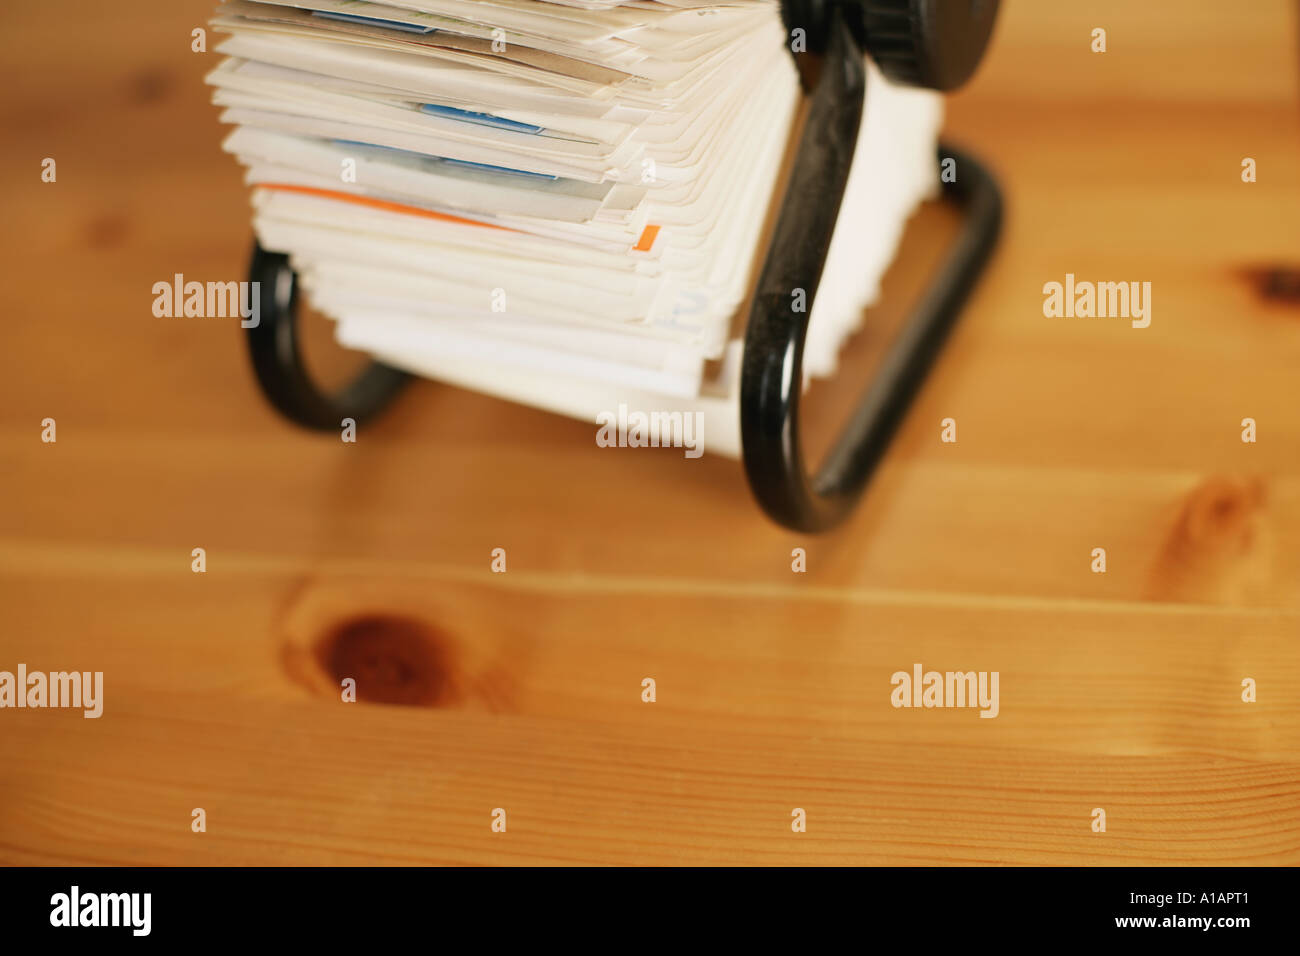 Rotary card file on a desk - Stock Image